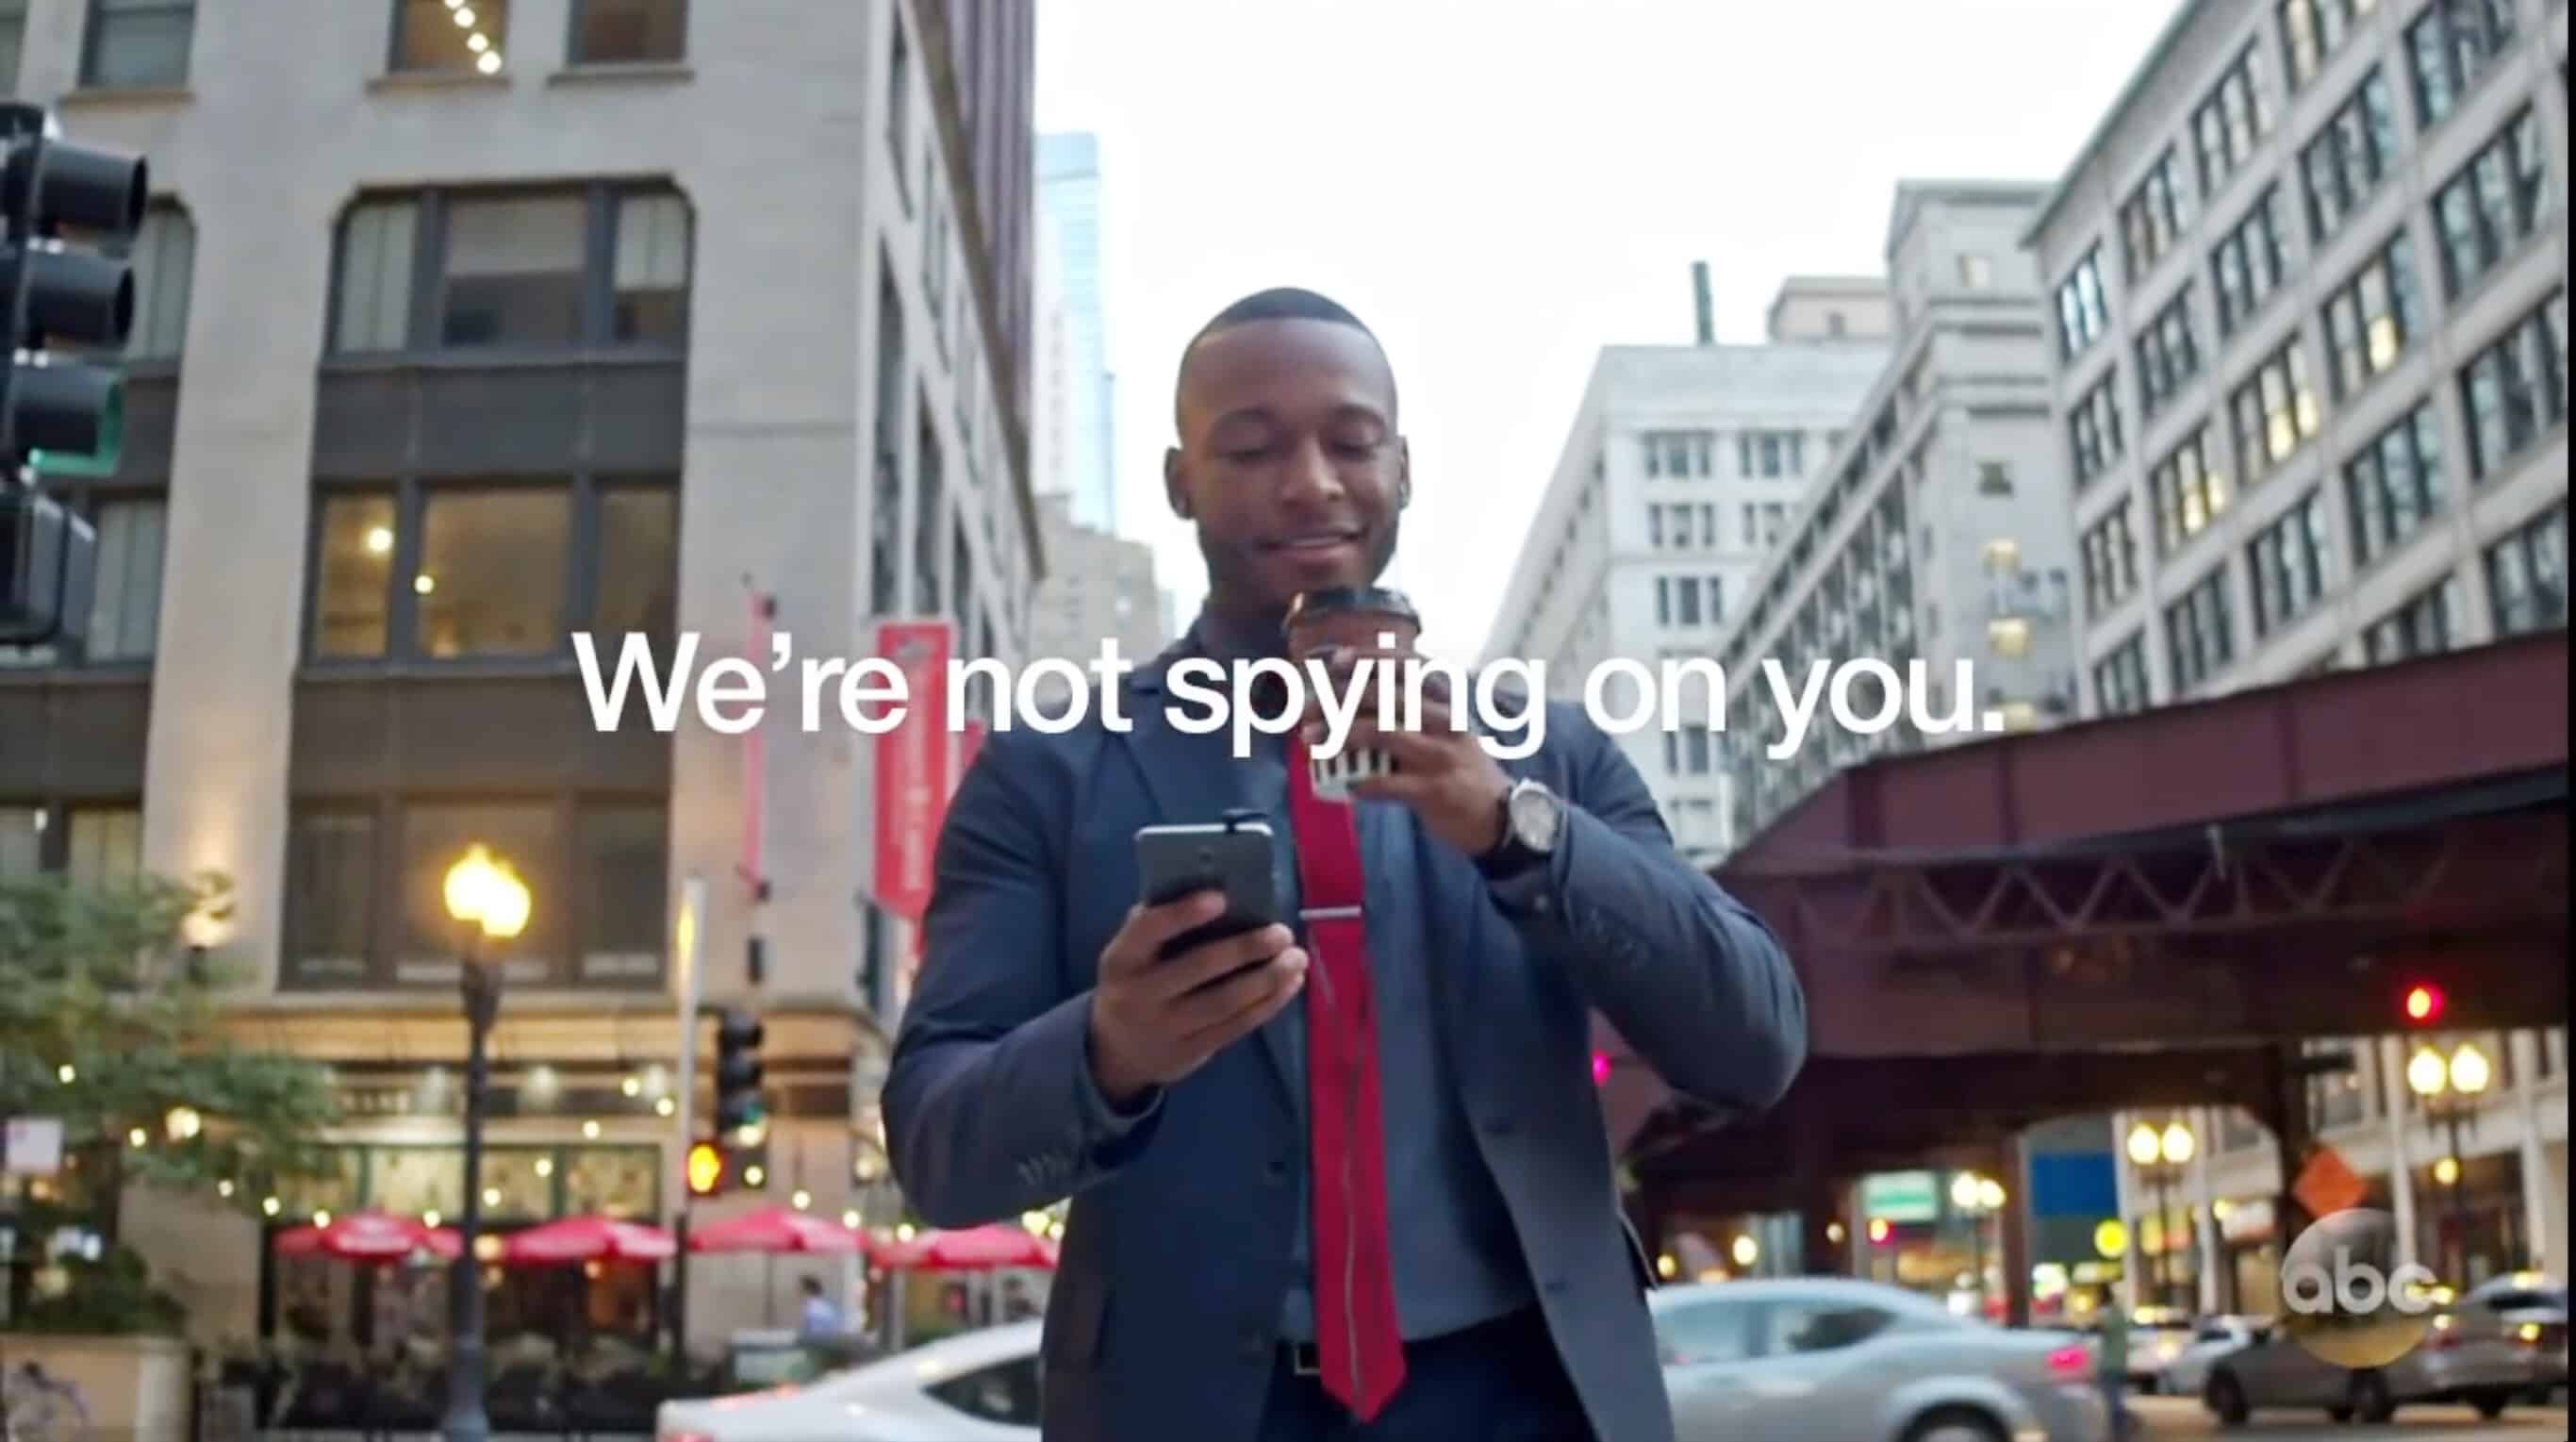 A late-night comedian pokes fun at our paranoia about iPhone privacy violations.